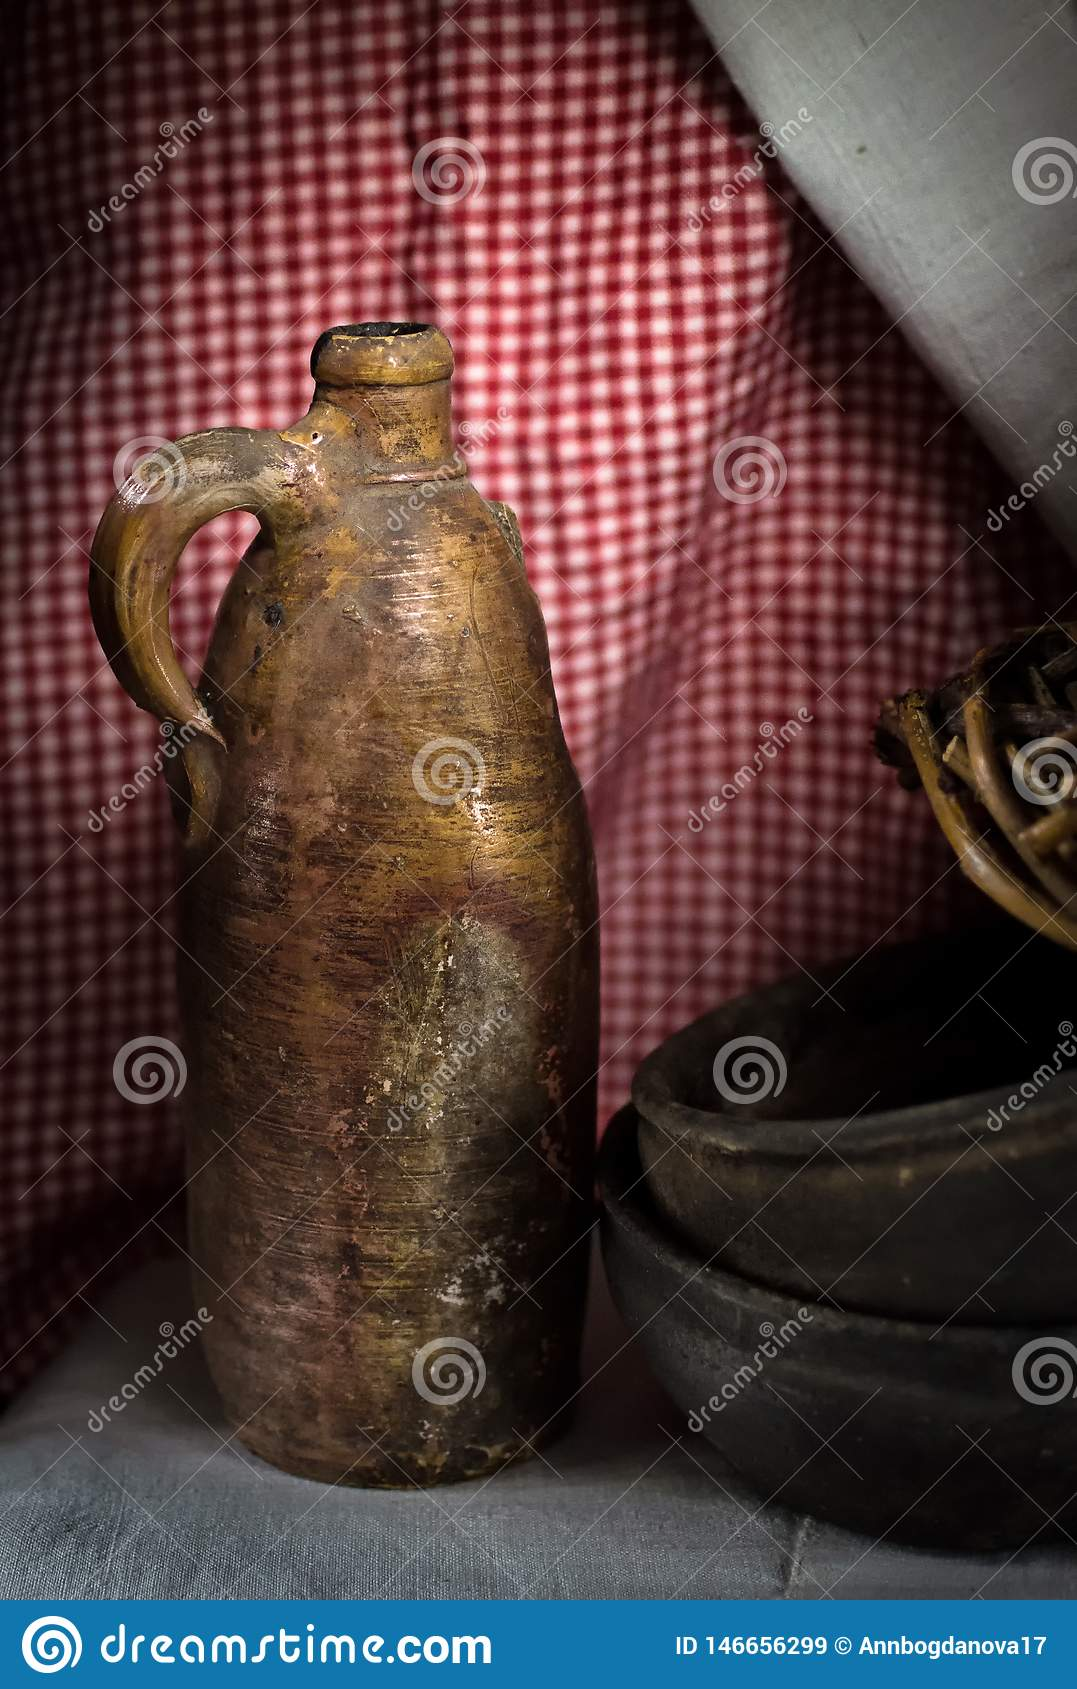 Jug of clay. antique pottery on the background of linen tablecloth